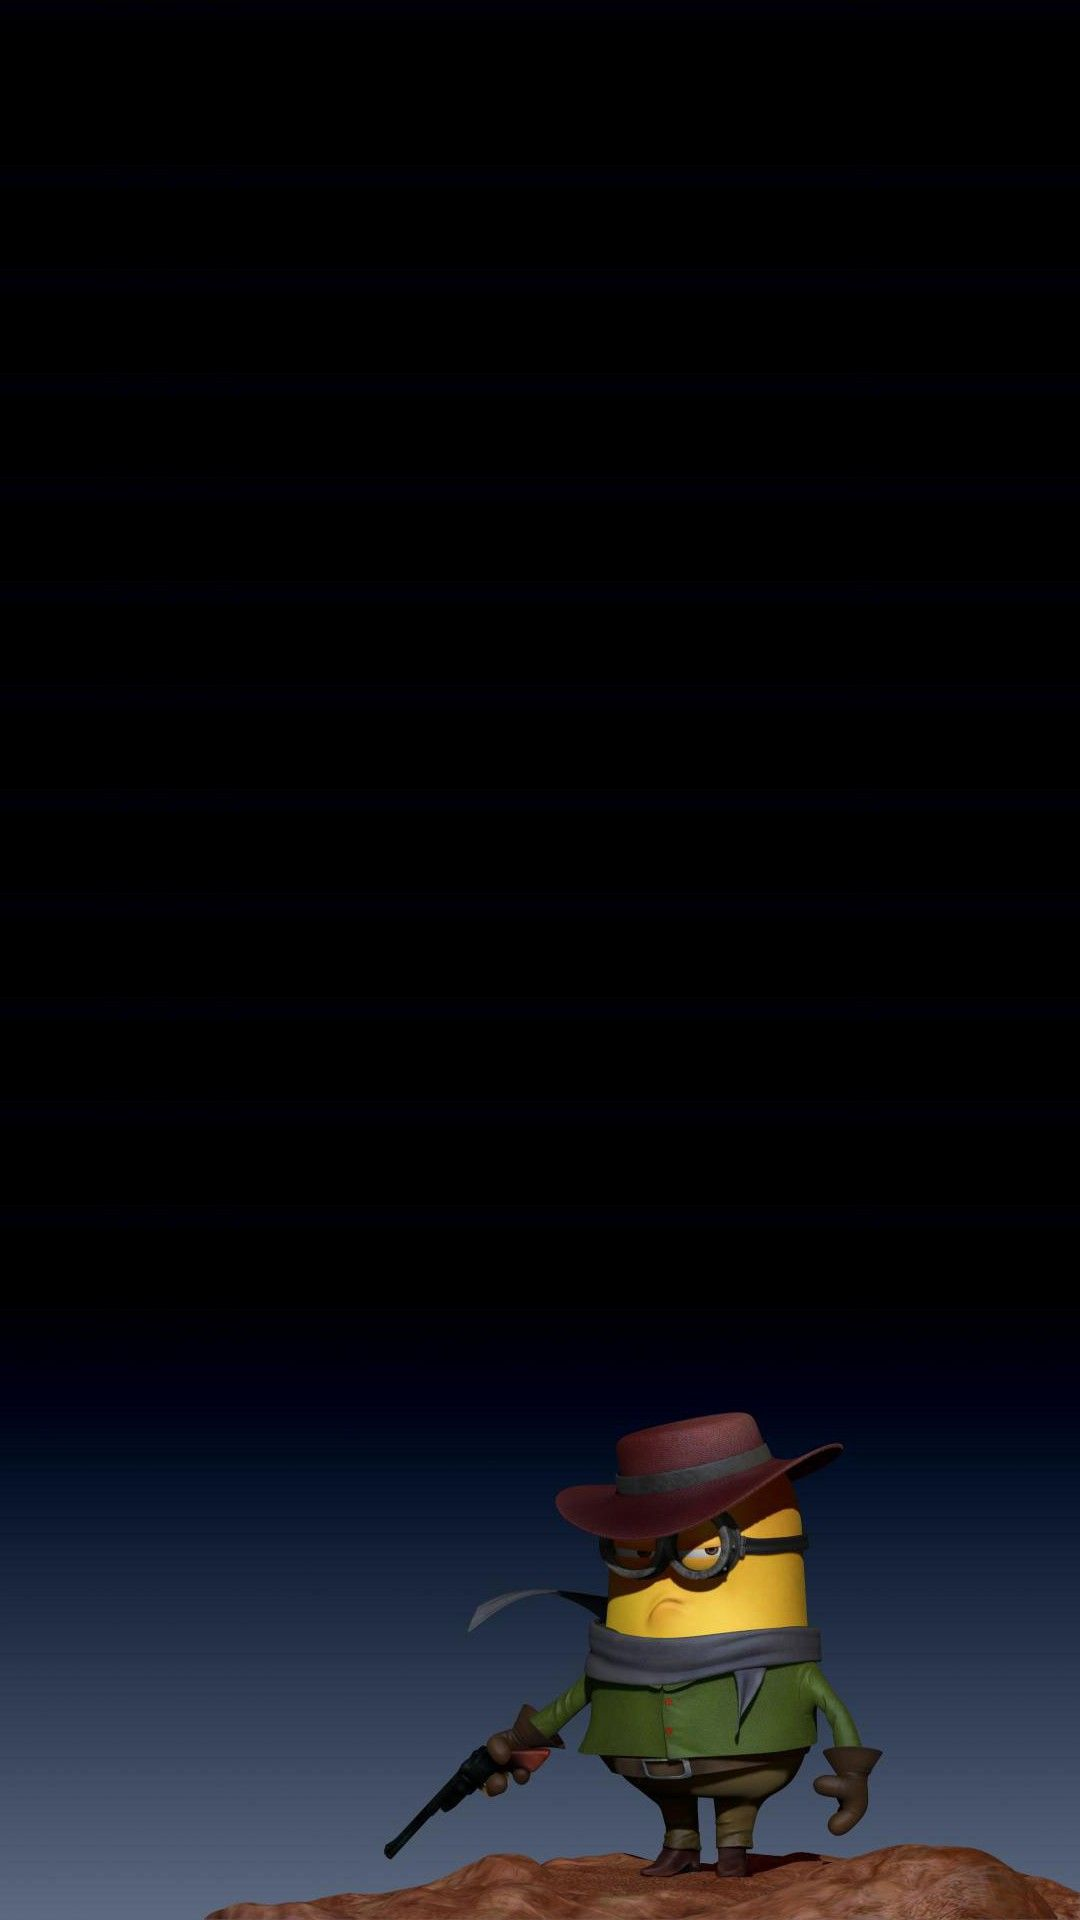 Parody Cowboy Minion Iphone 6 Plus Wallpaper Hd Despicable Me